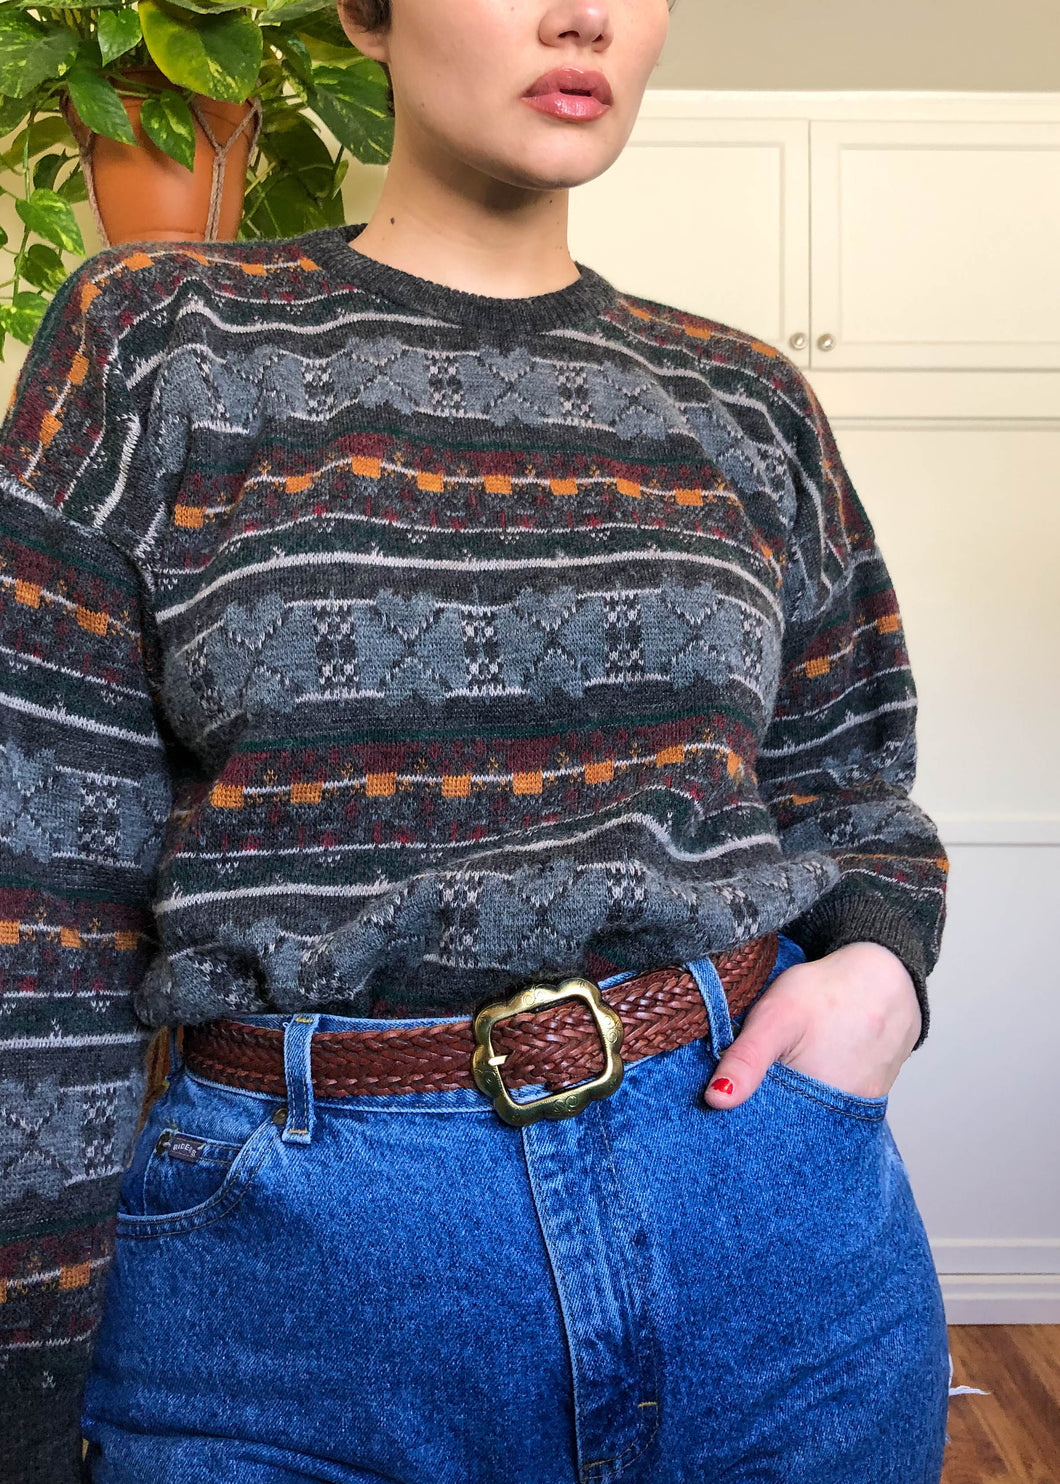 Vintage Harvest Pullover Sweater - XL